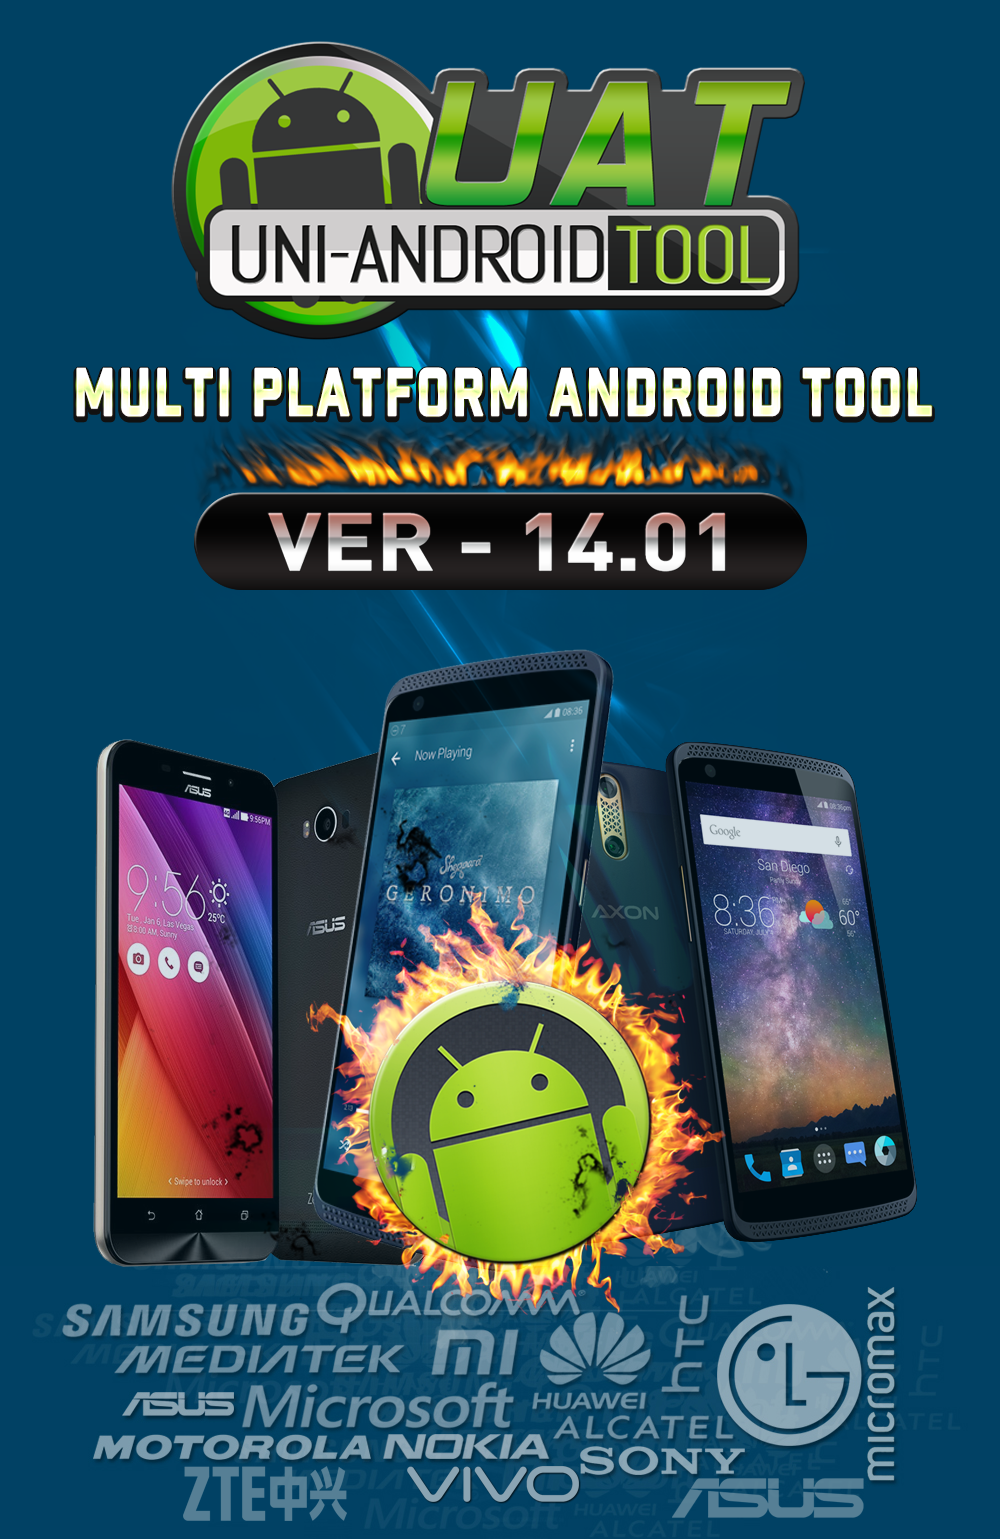 Uni-Android Tool [UAT] Version 14.01 Released GtwVdr